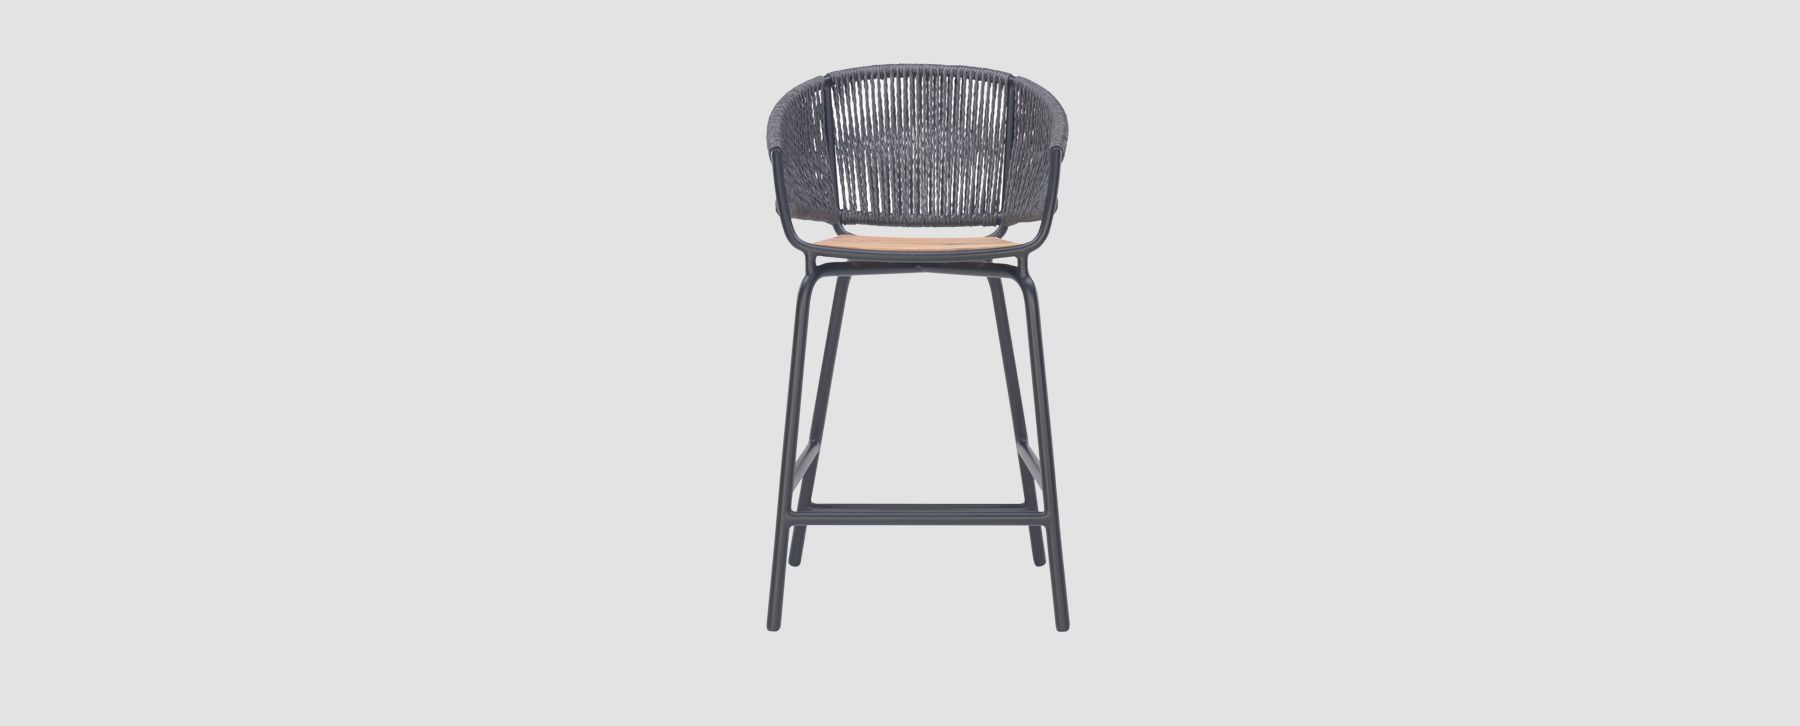 Outstanding Woven Rope Bar Stools Ibusinesslaw Wood Chair Design Ideas Ibusinesslaworg